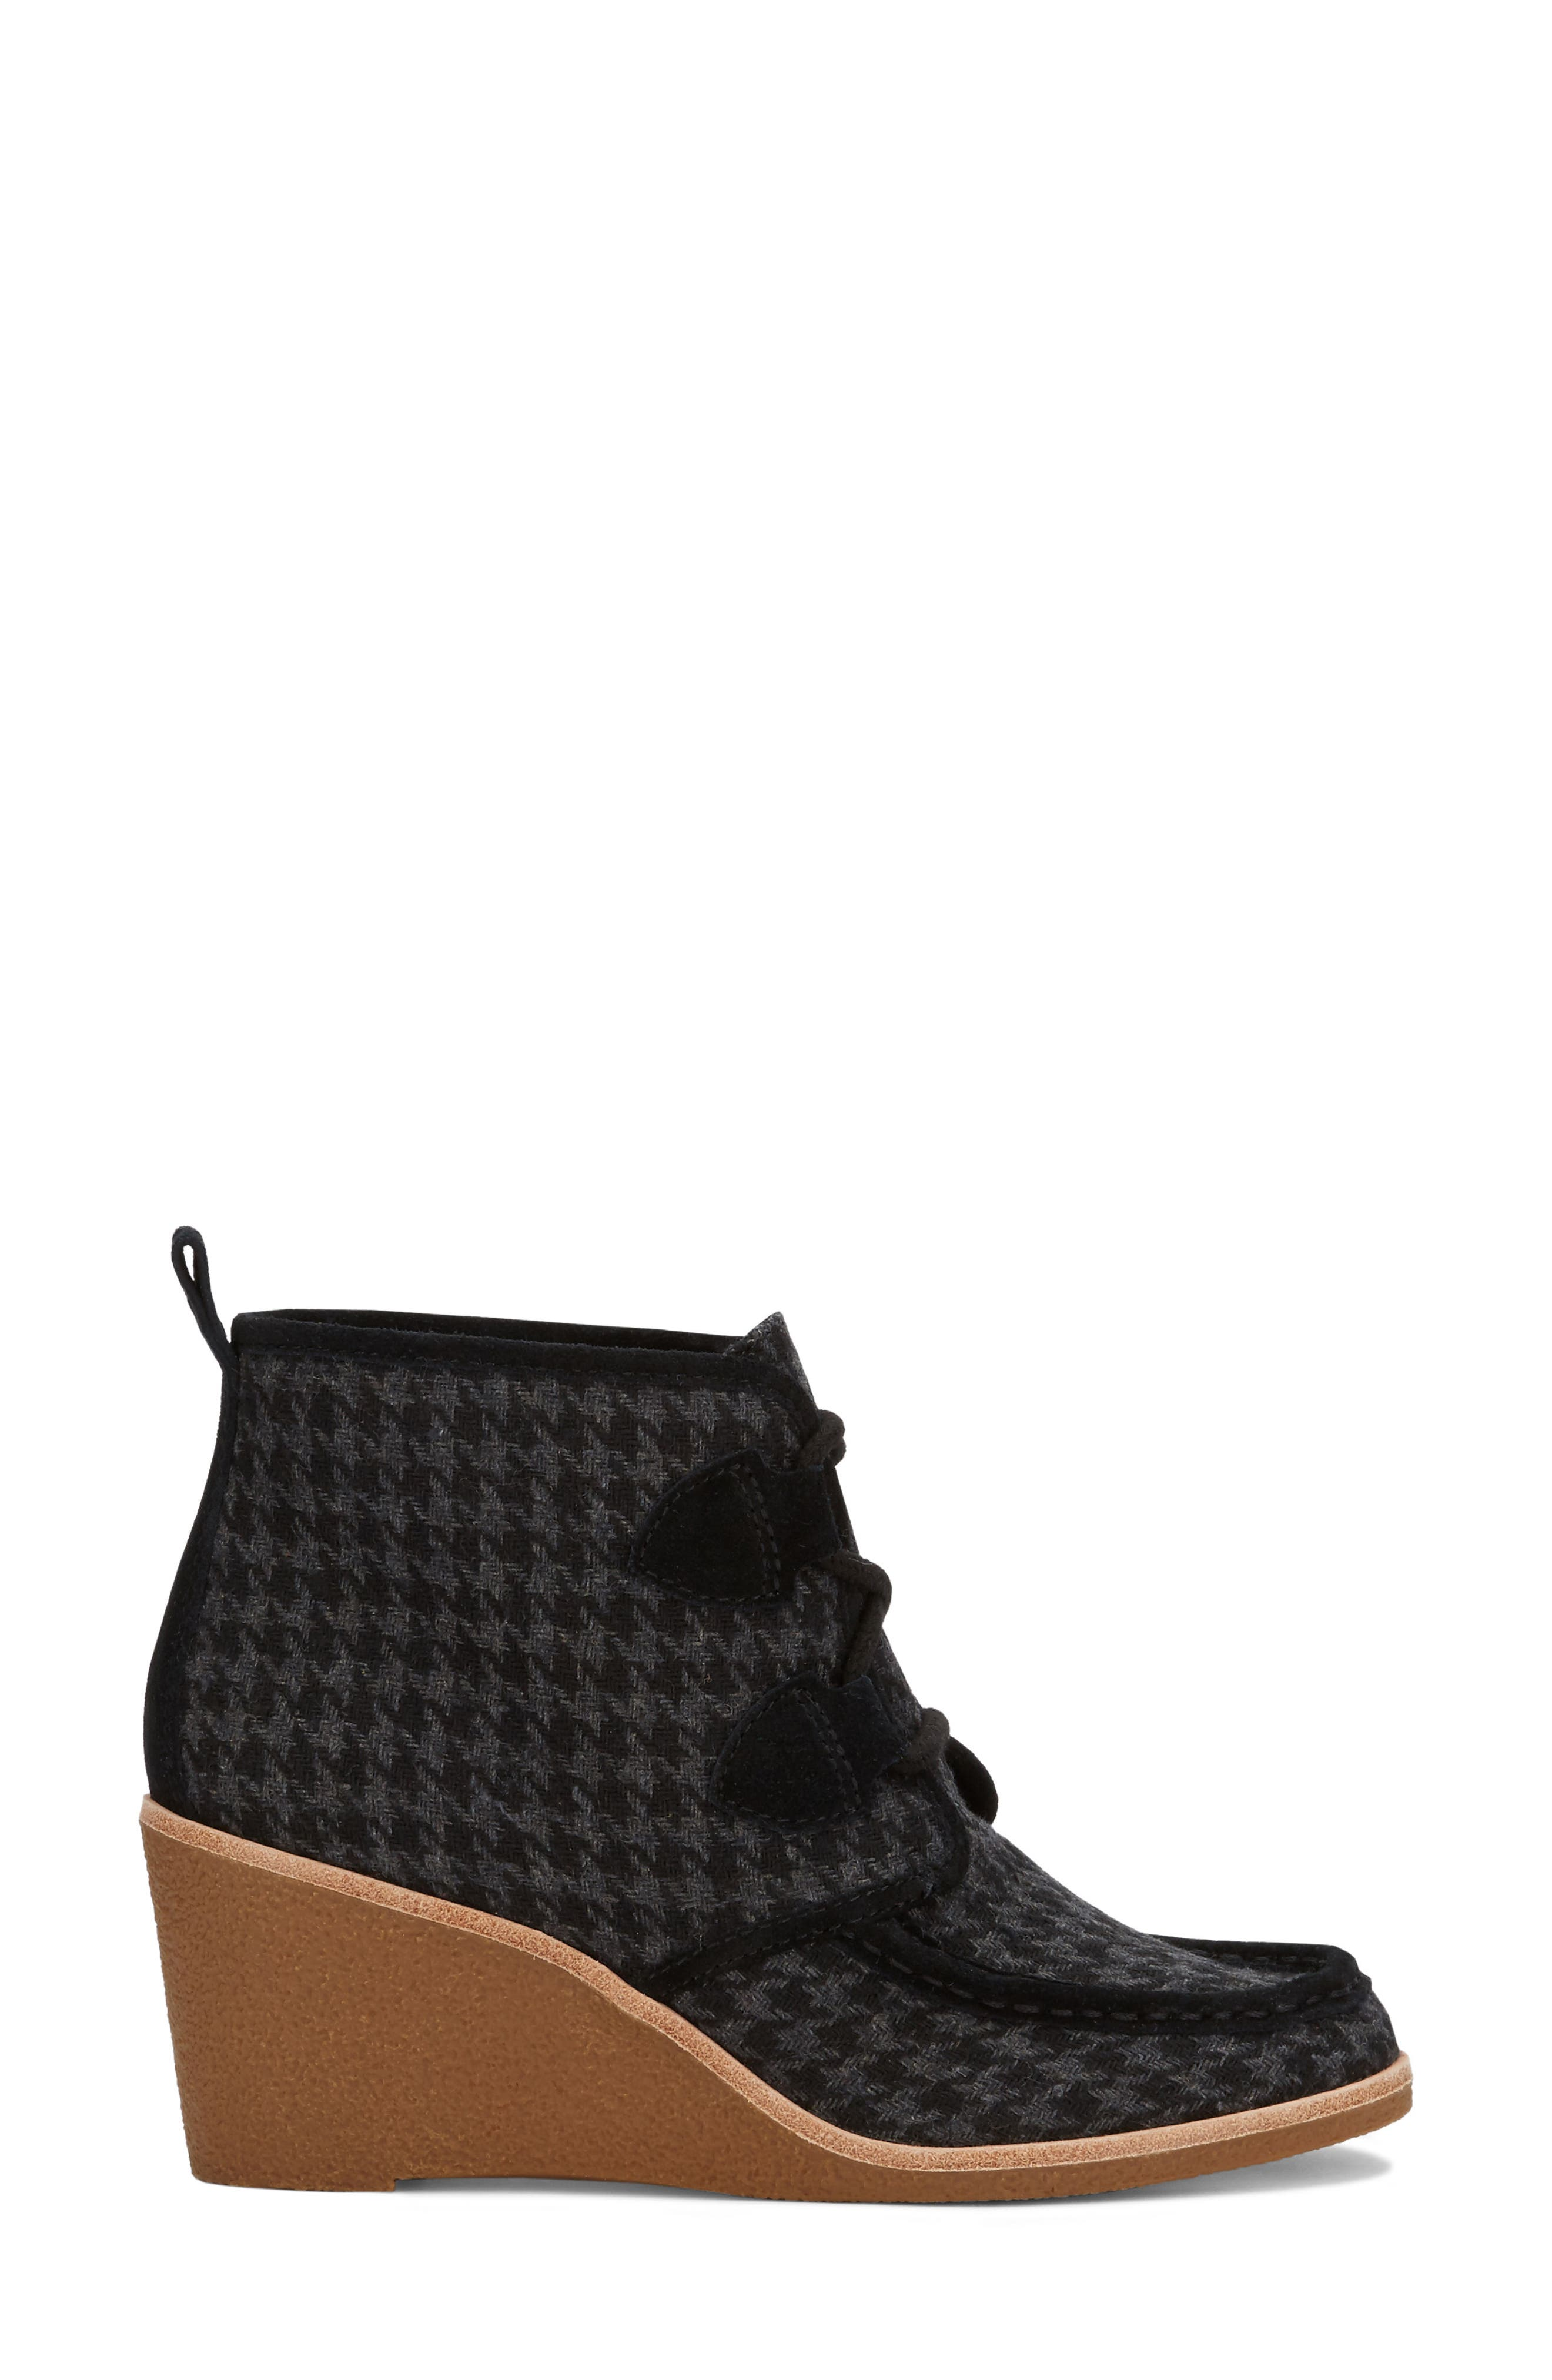 Rosa Wedge Bootie,                             Alternate thumbnail 2, color,                             001